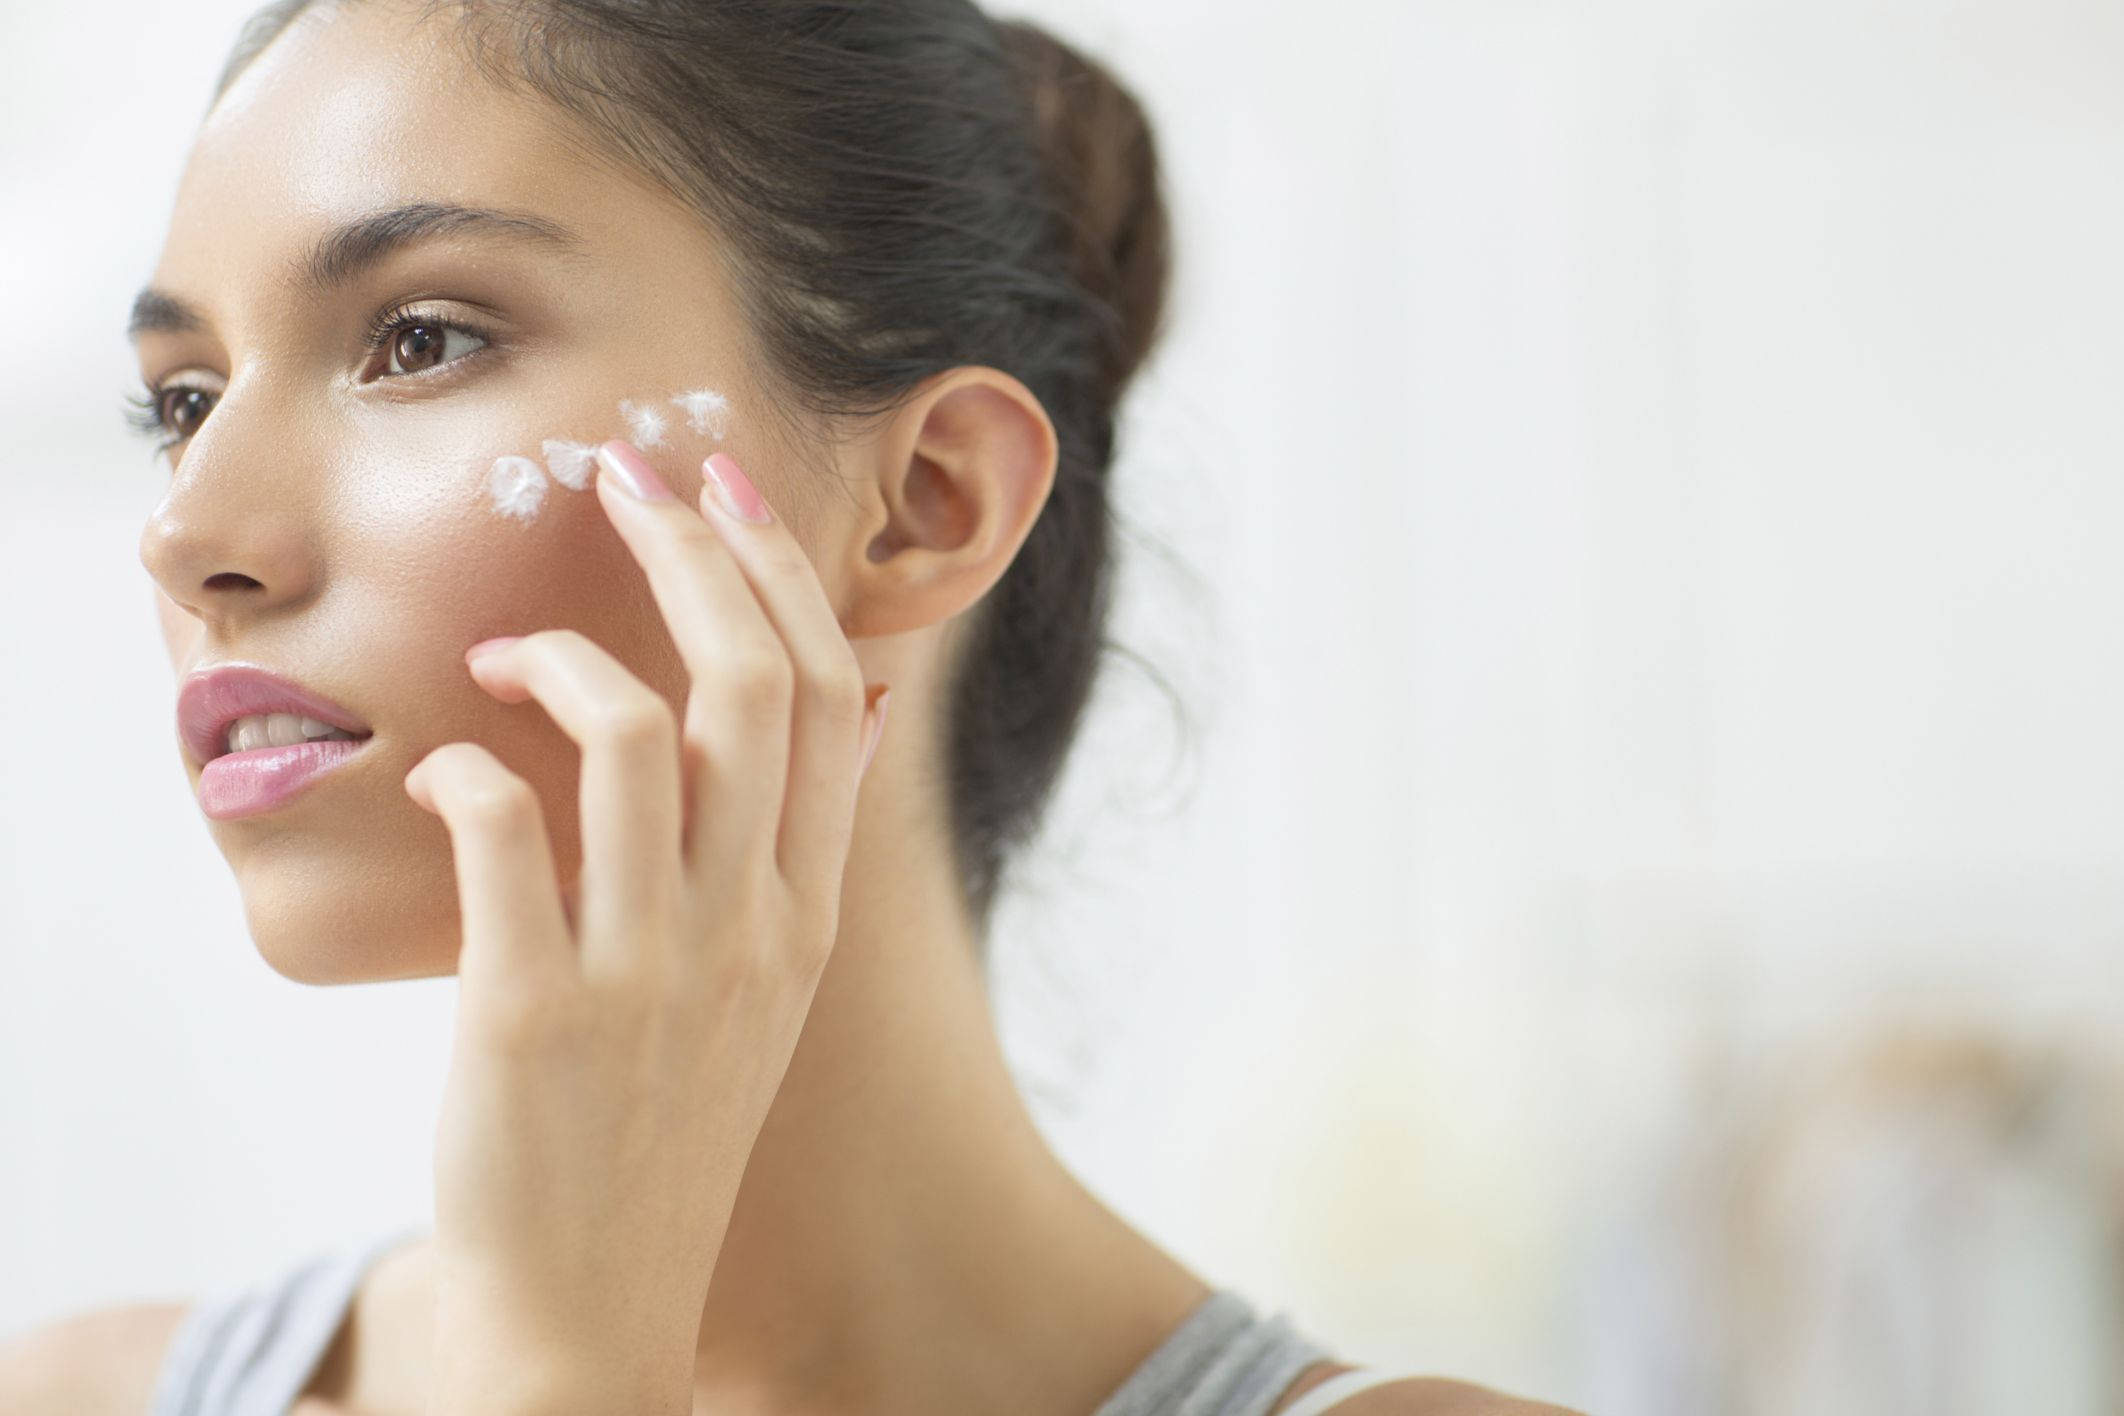 Are You Using The Right Acne Treatments